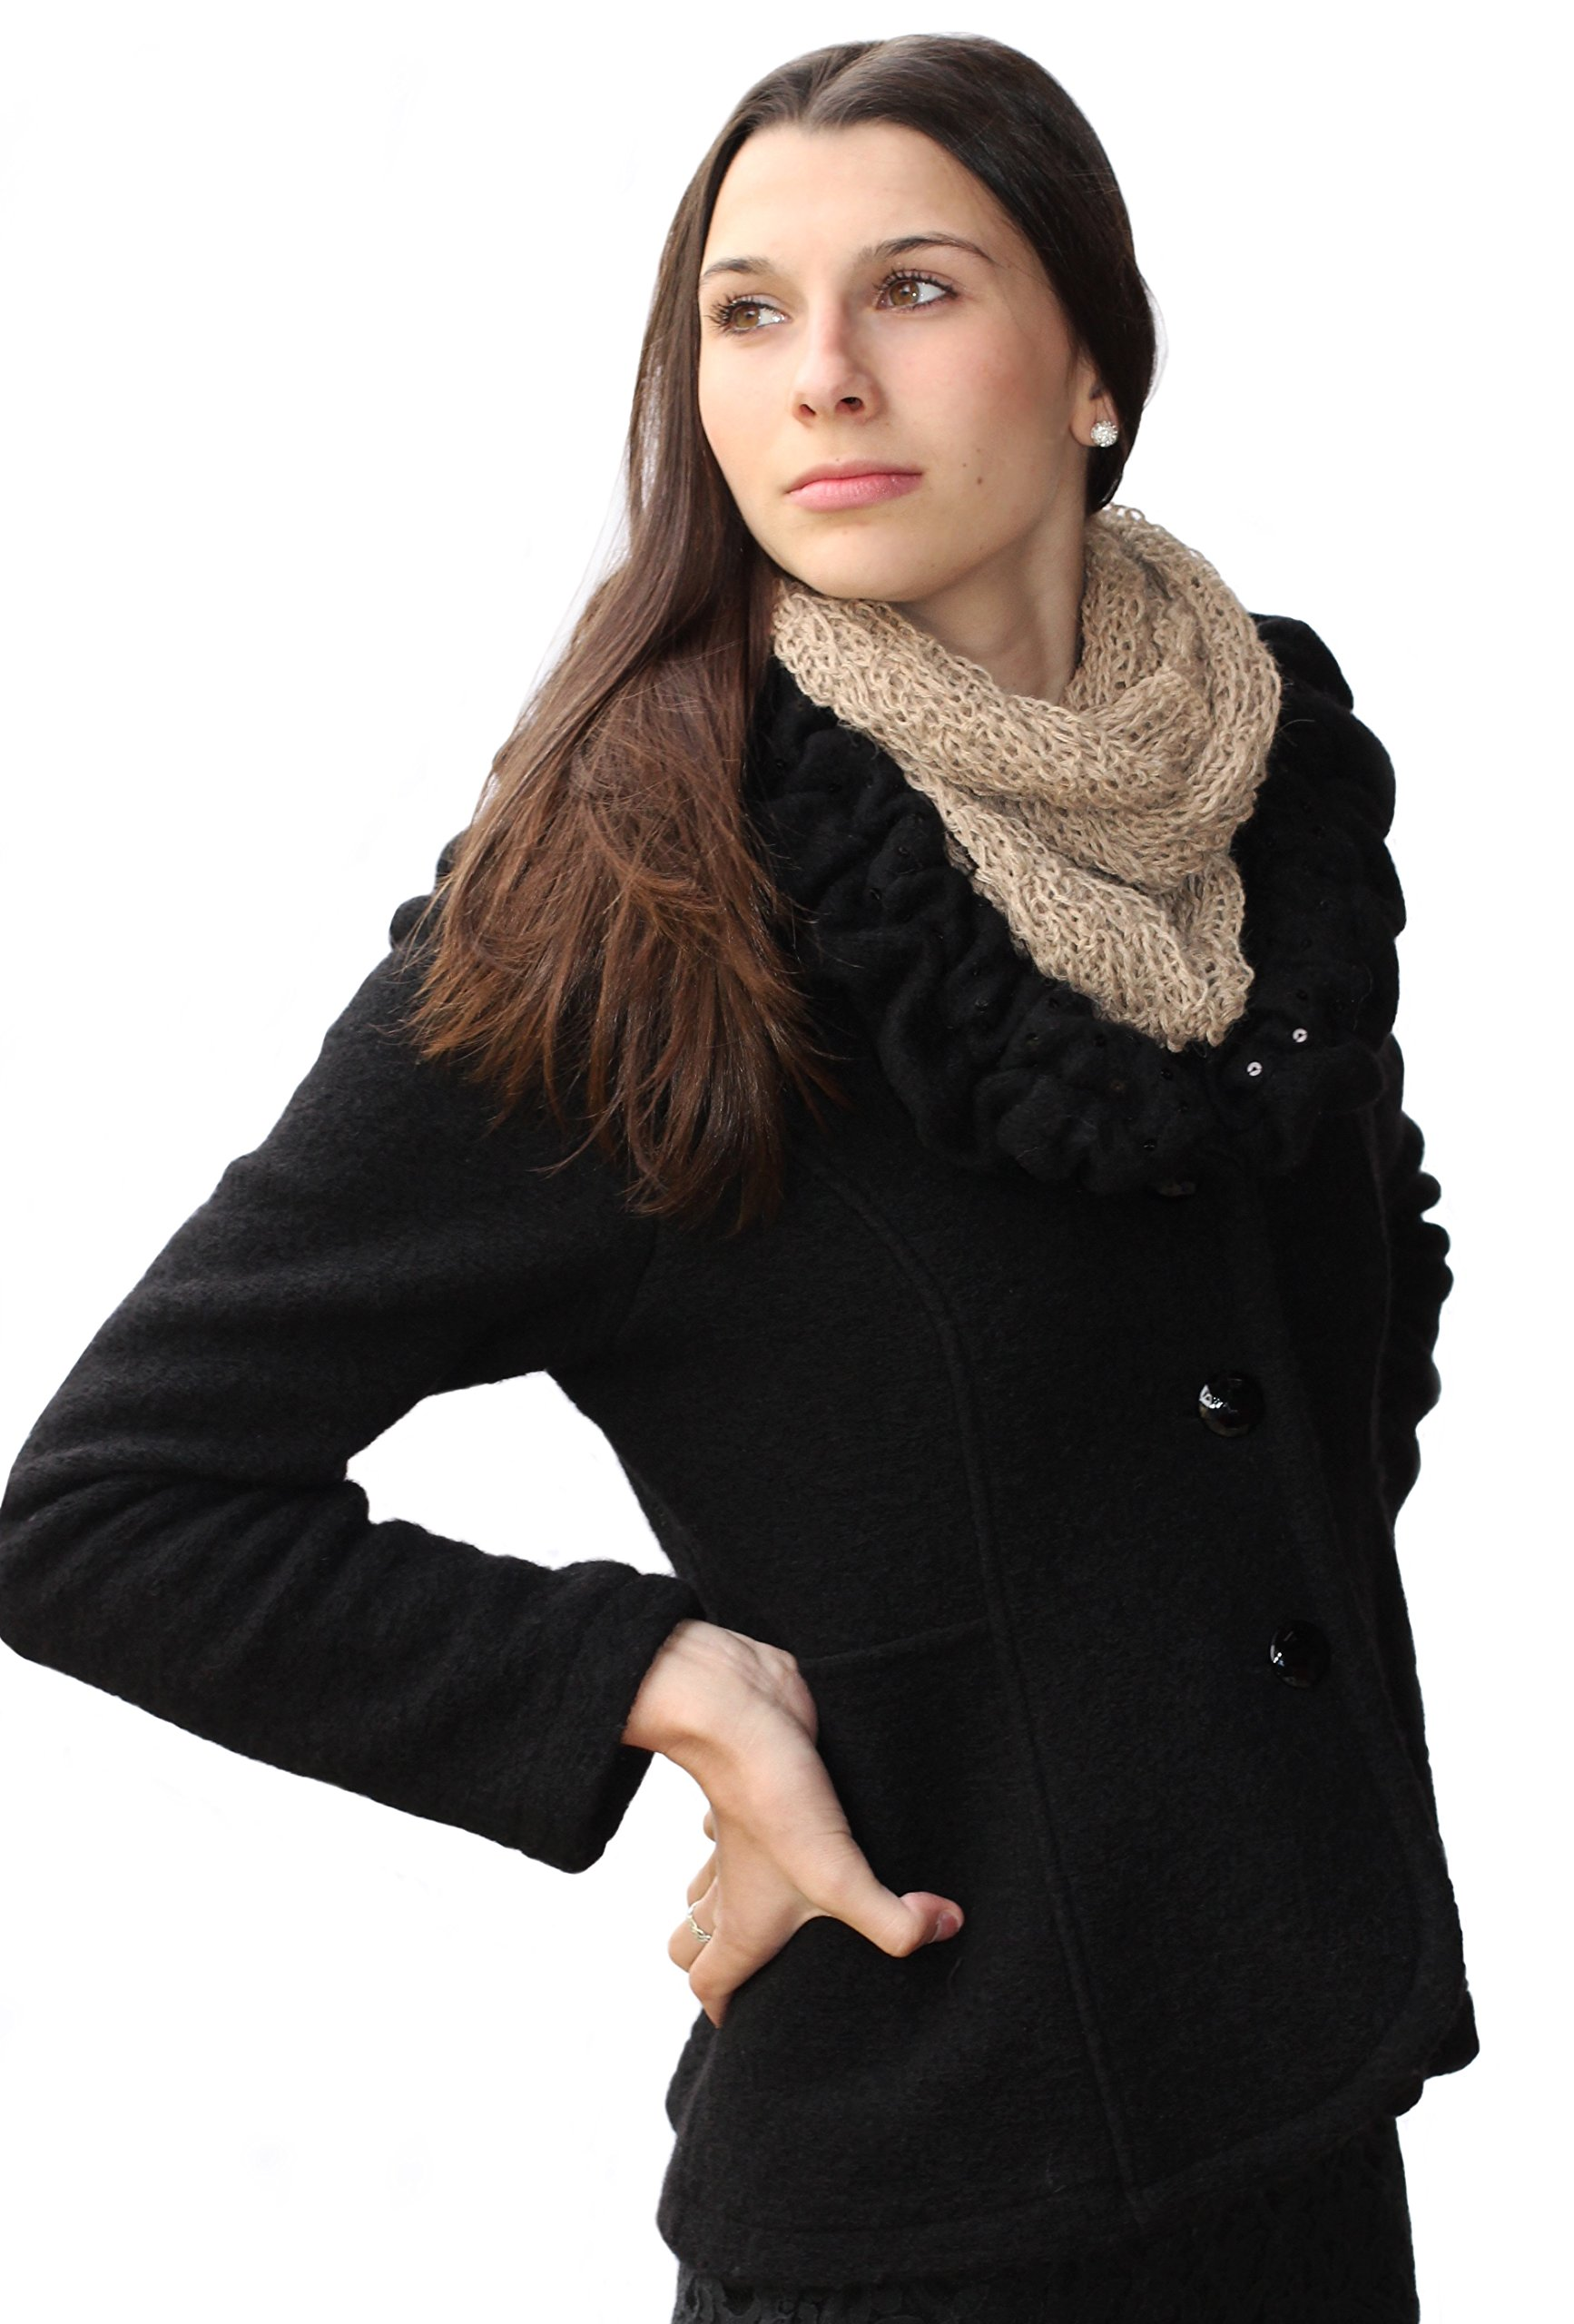 CLEARANCE - Knitted by Hand Soft PURE ALPACA Infinity Loop Scarf (SHIPS FROM FRANCE)